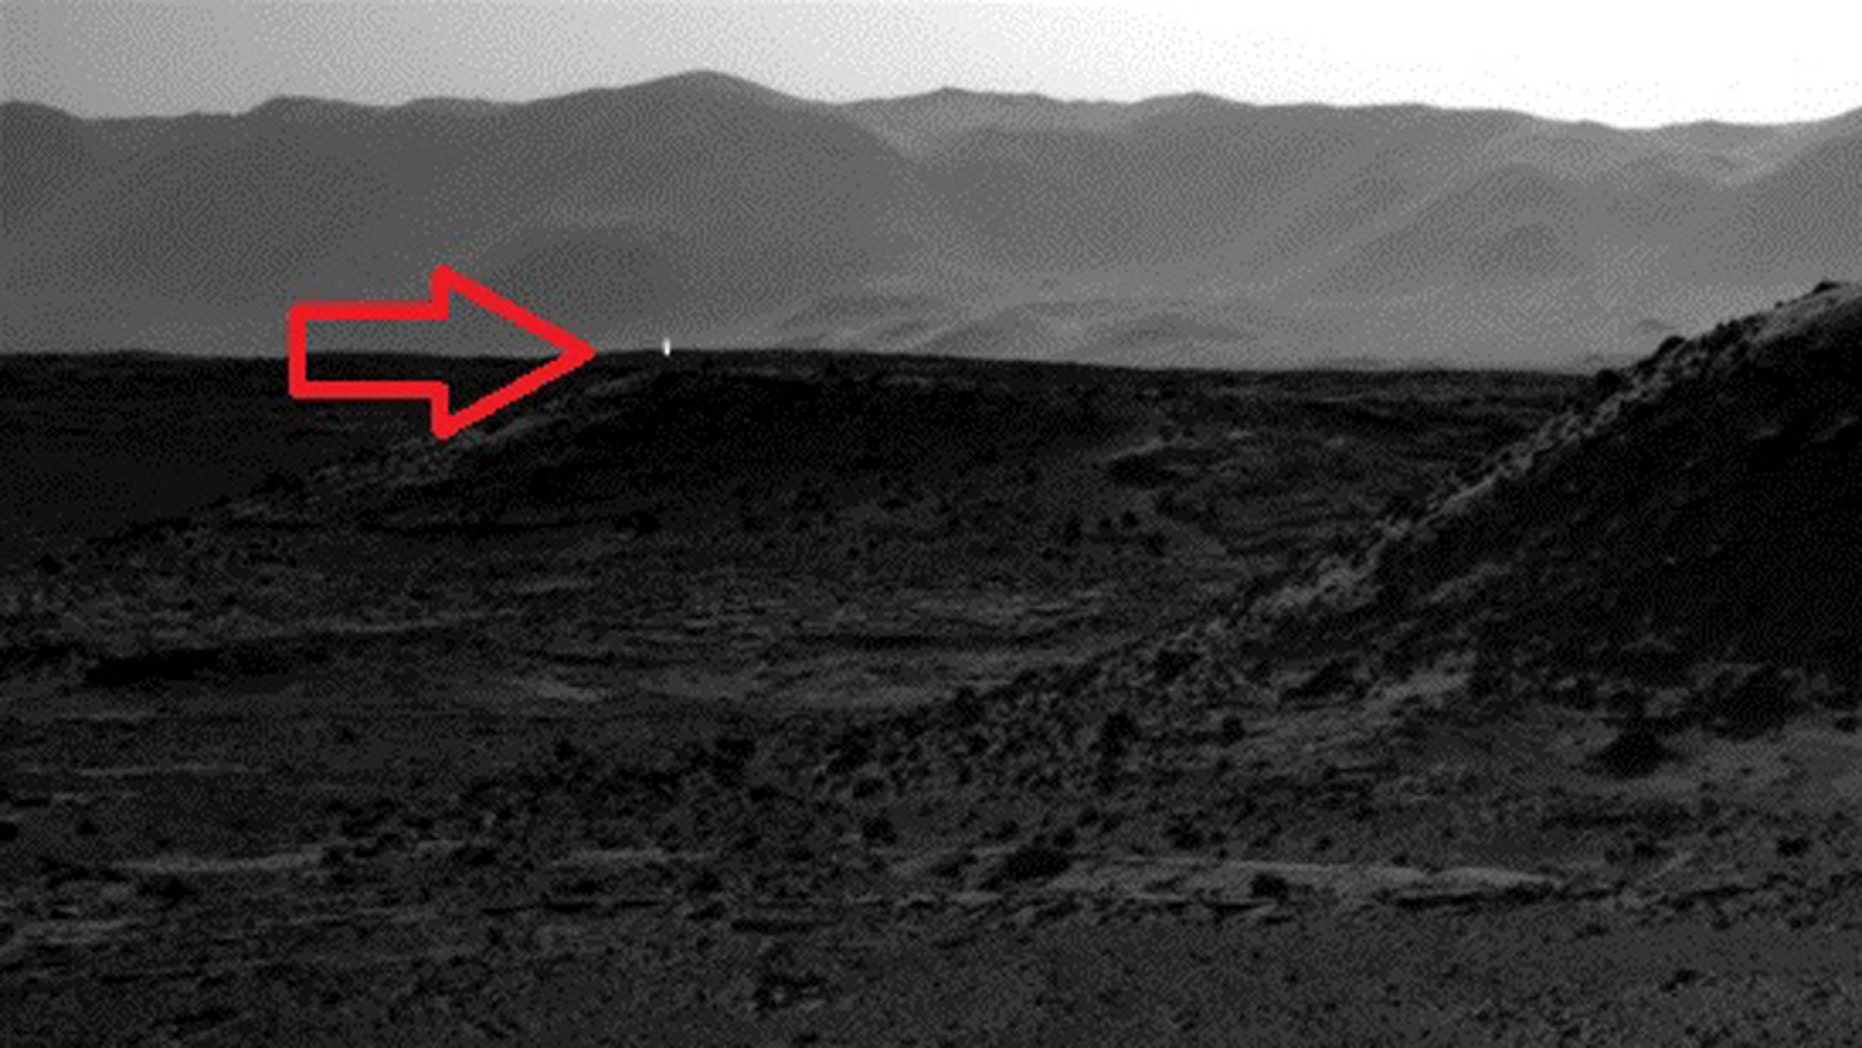 This image was taken by NASA's Mars rover Curiosity's Navcam on April 3.